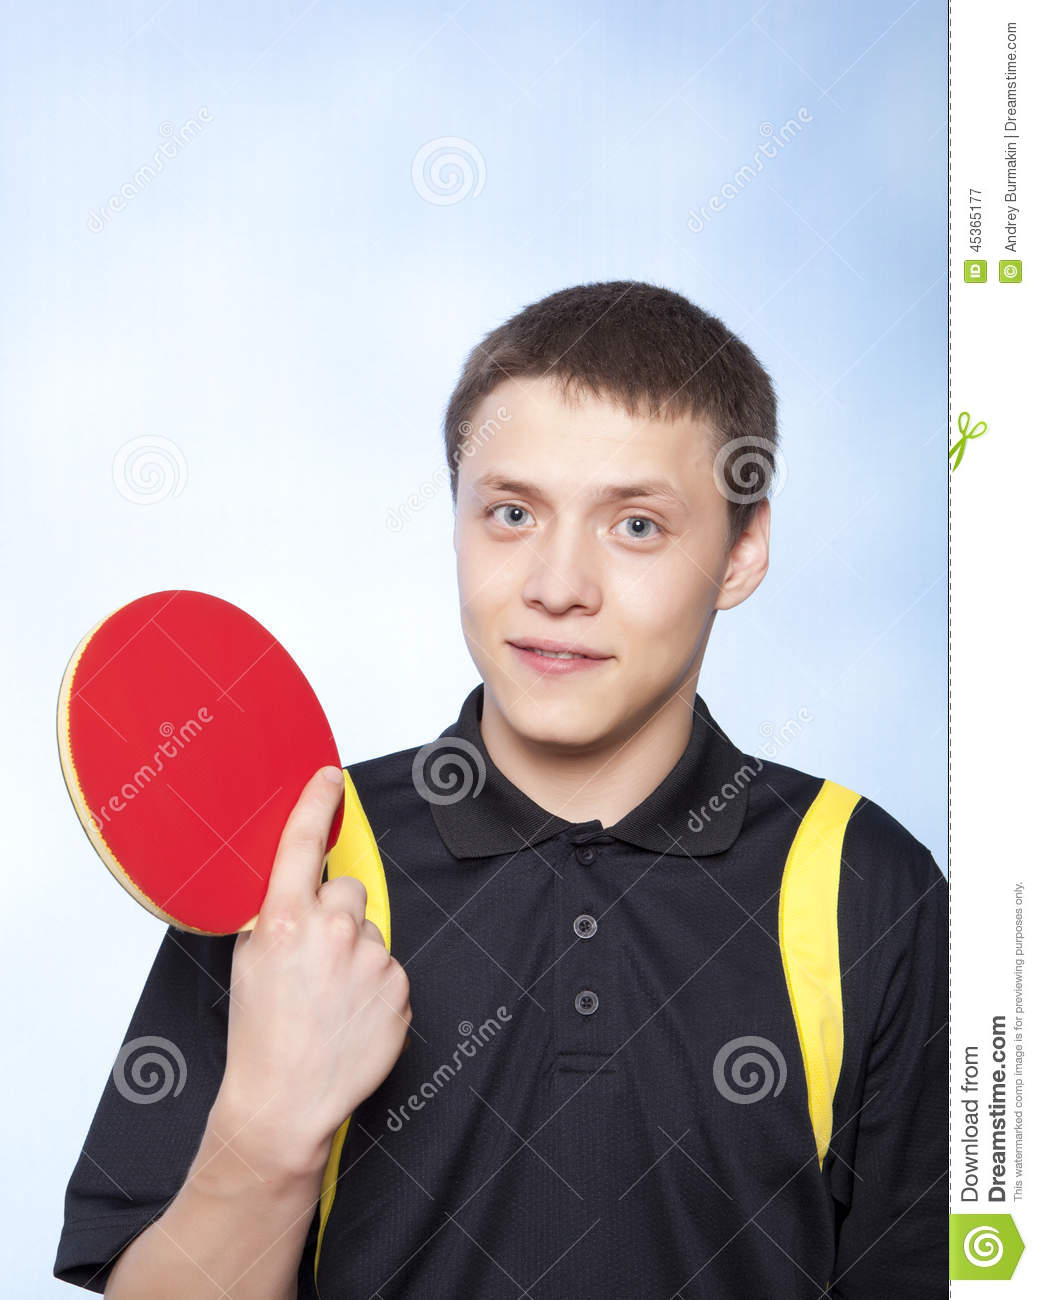 Homme jouant au ping-pong